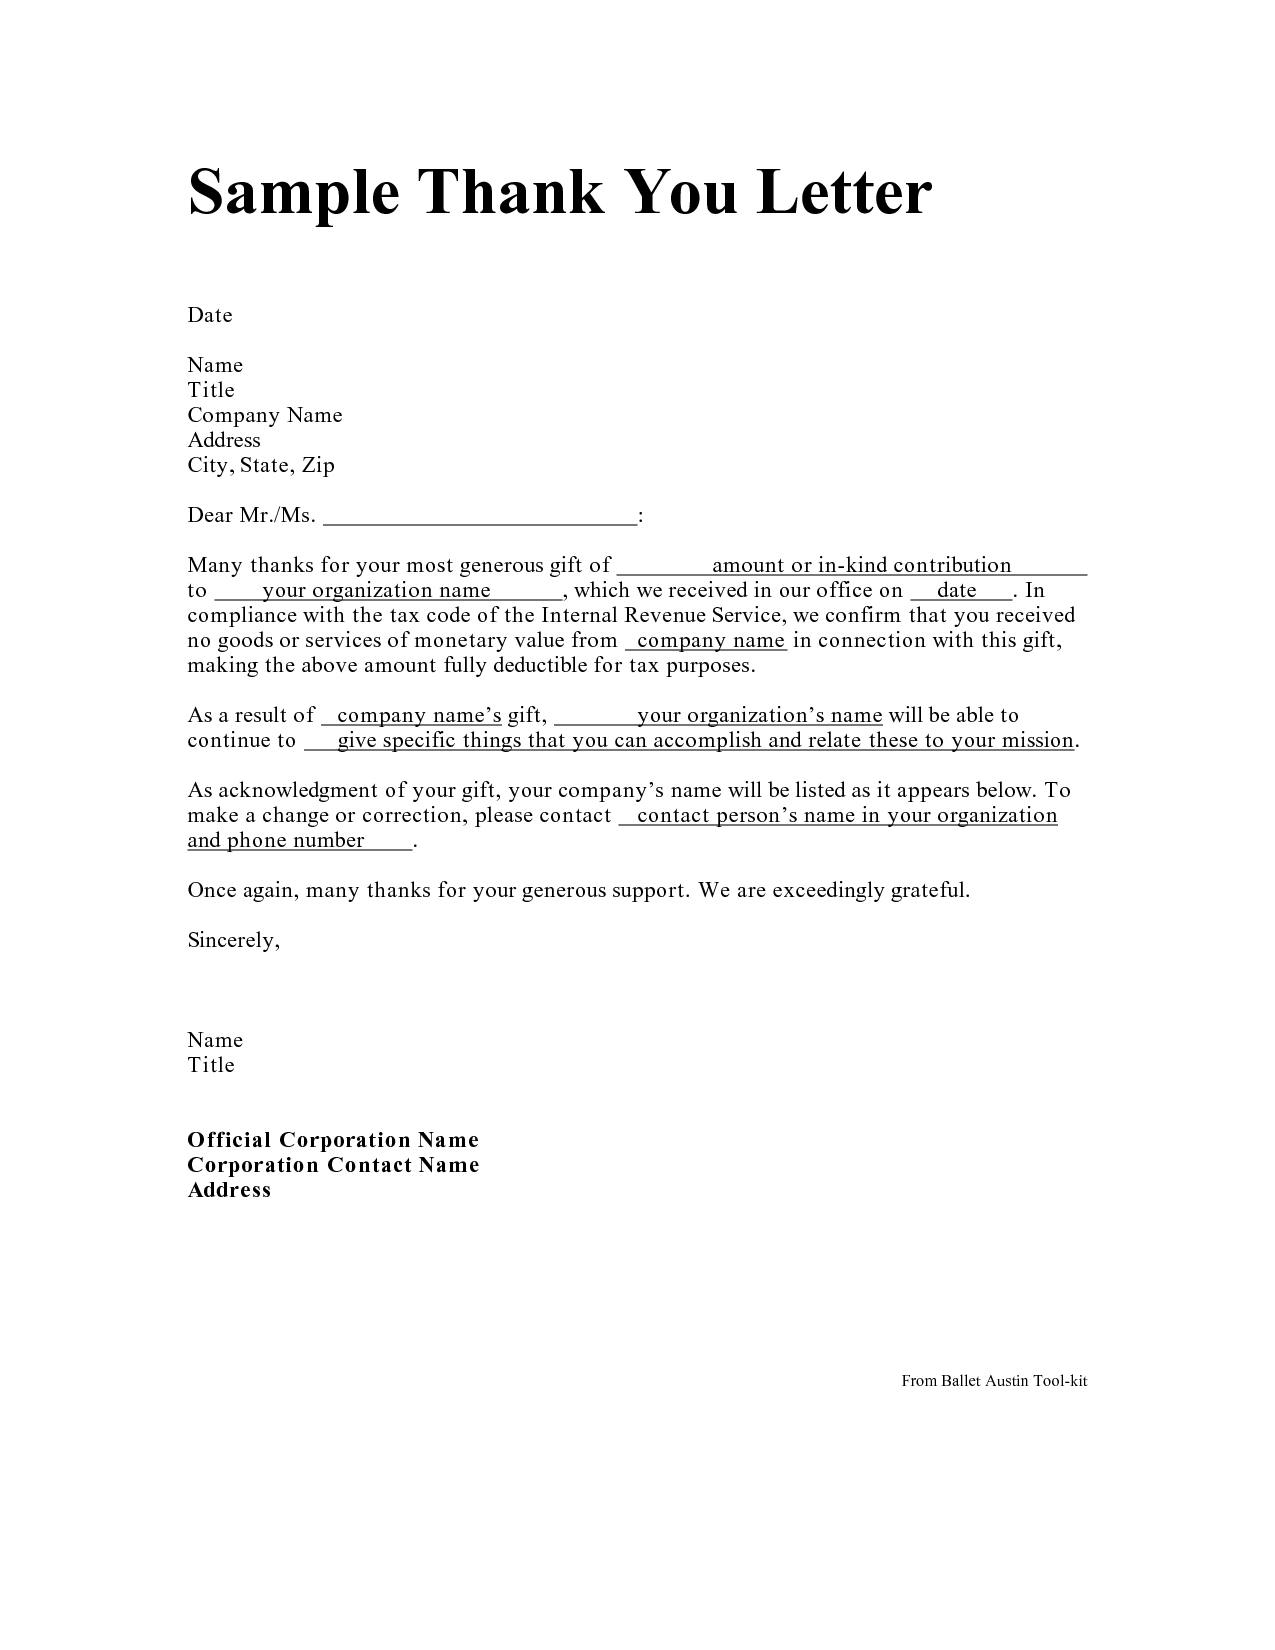 Reach Compliance Letter Template - Personal Thank You Letter Personal Thank You Letter Samples